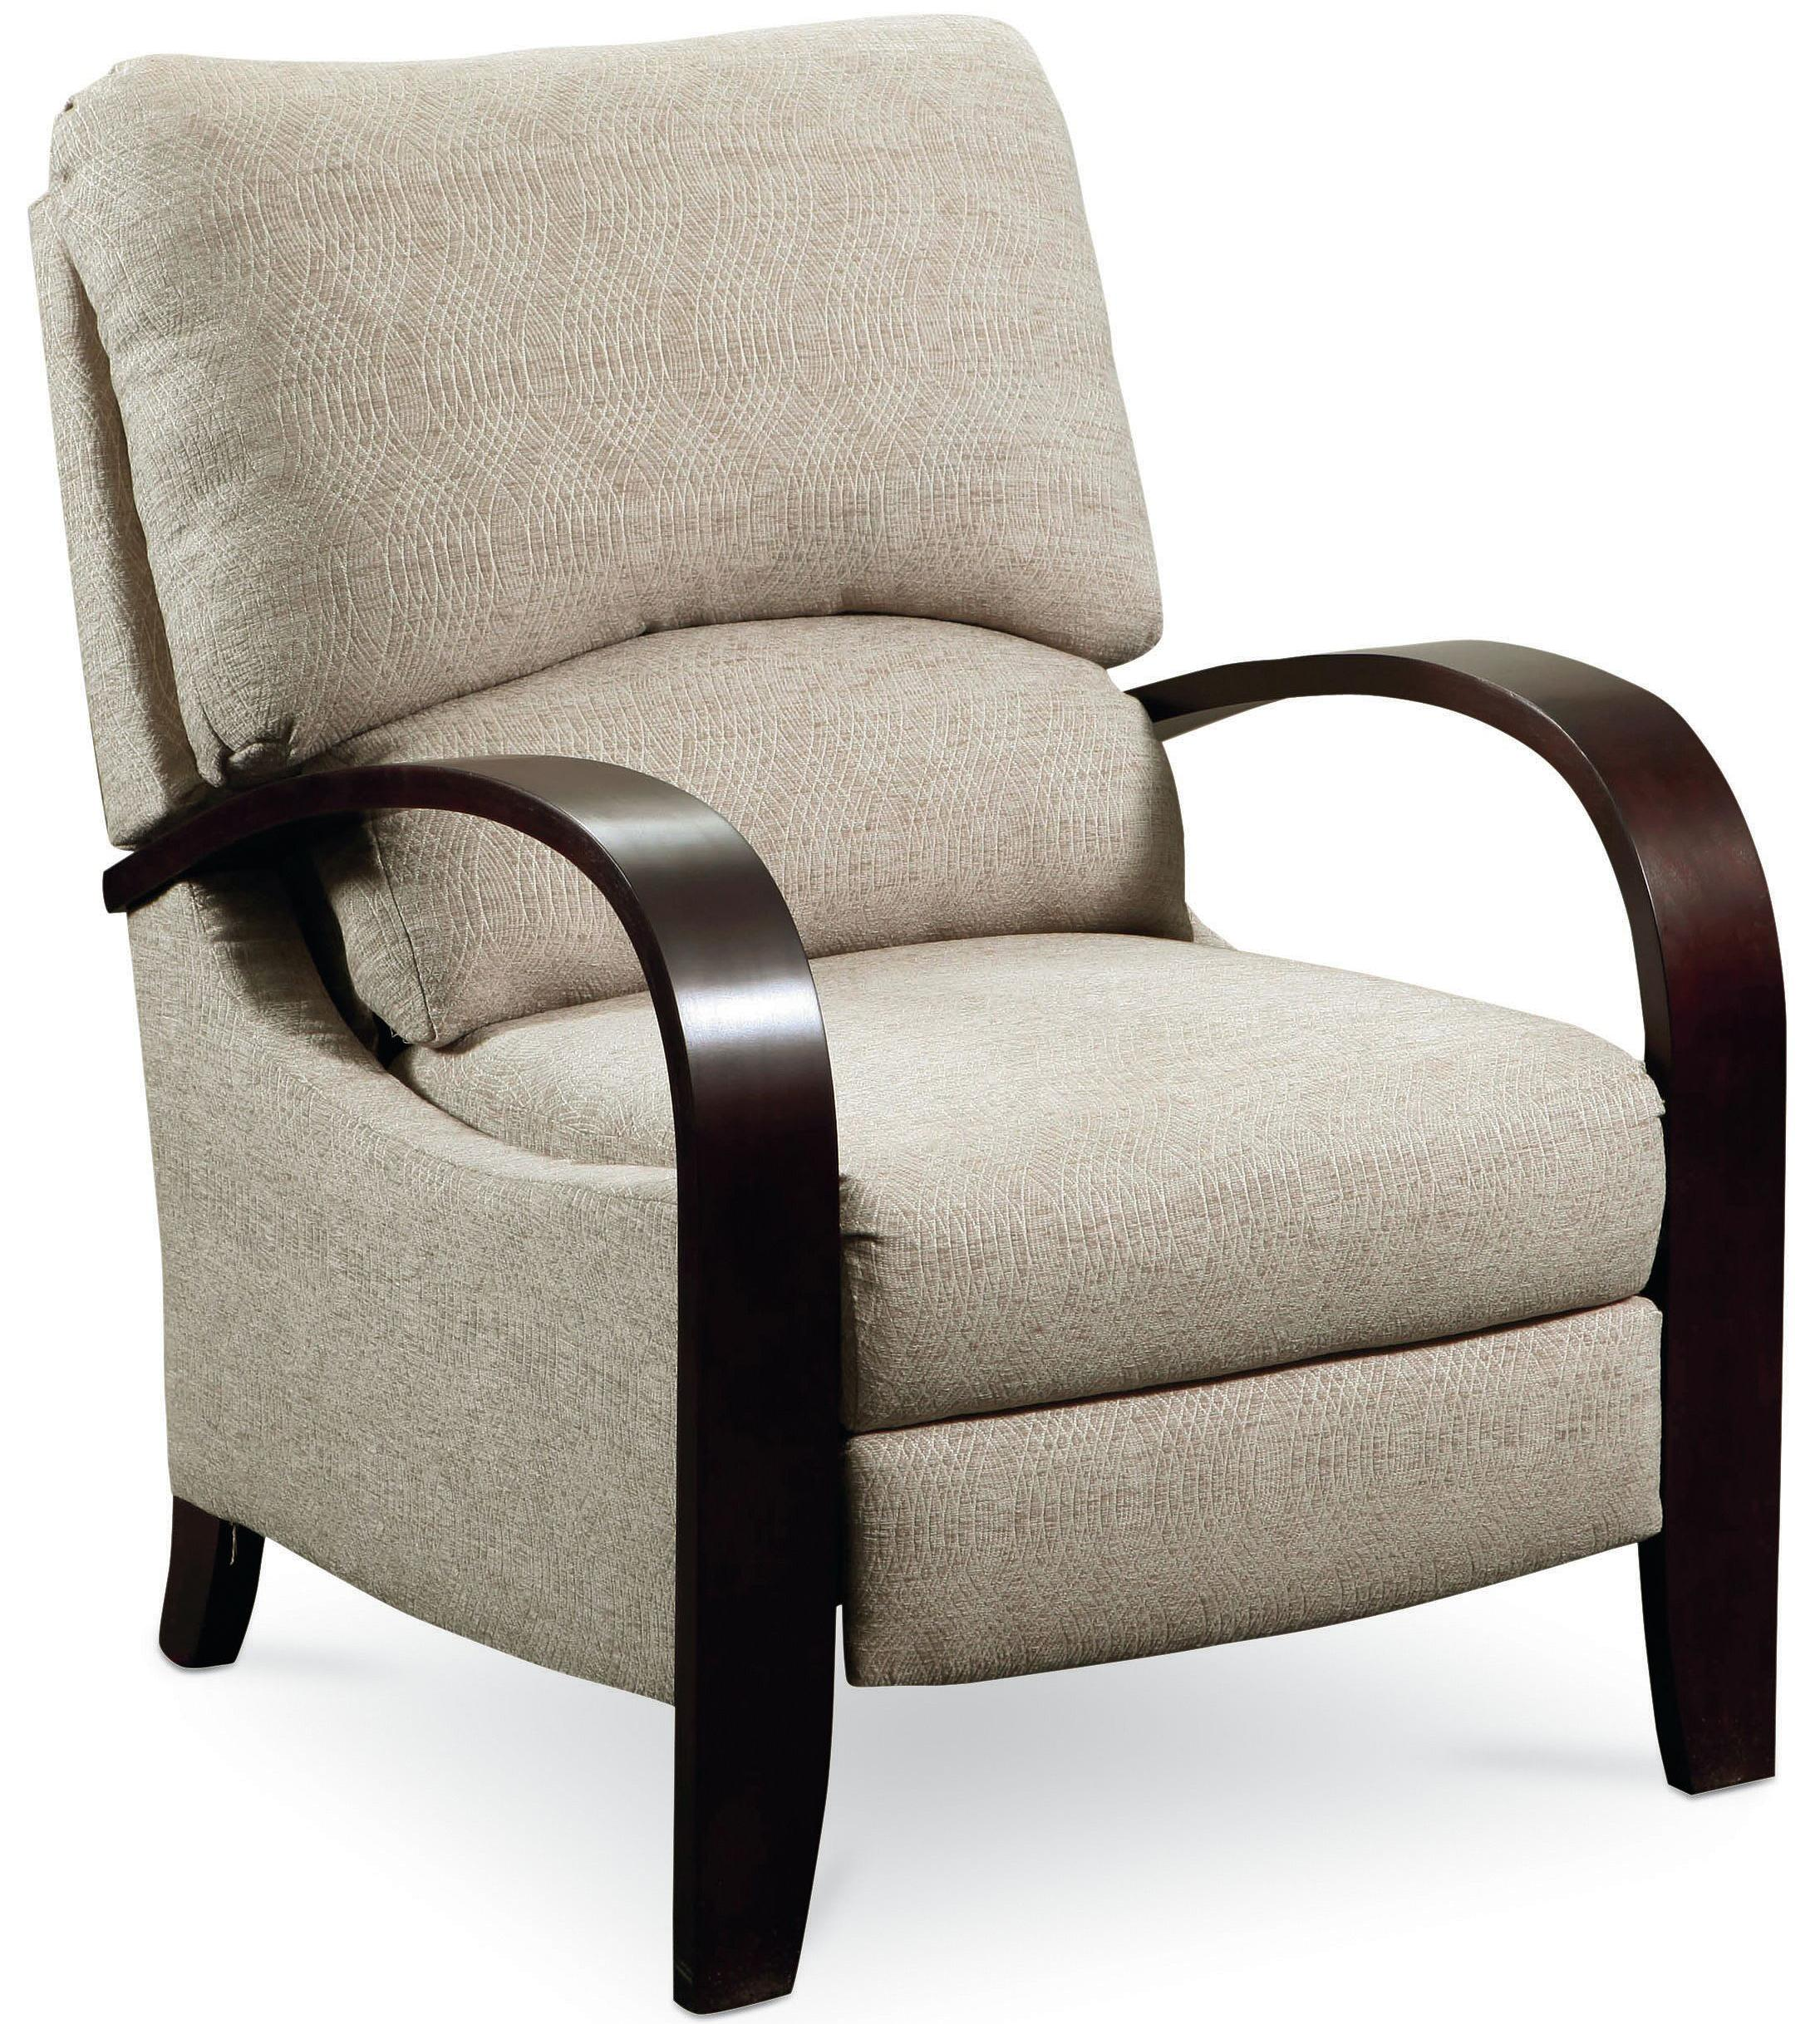 products furniture high and gardiner reclining by chair ralph recliner wolf bent klaussner arm leg